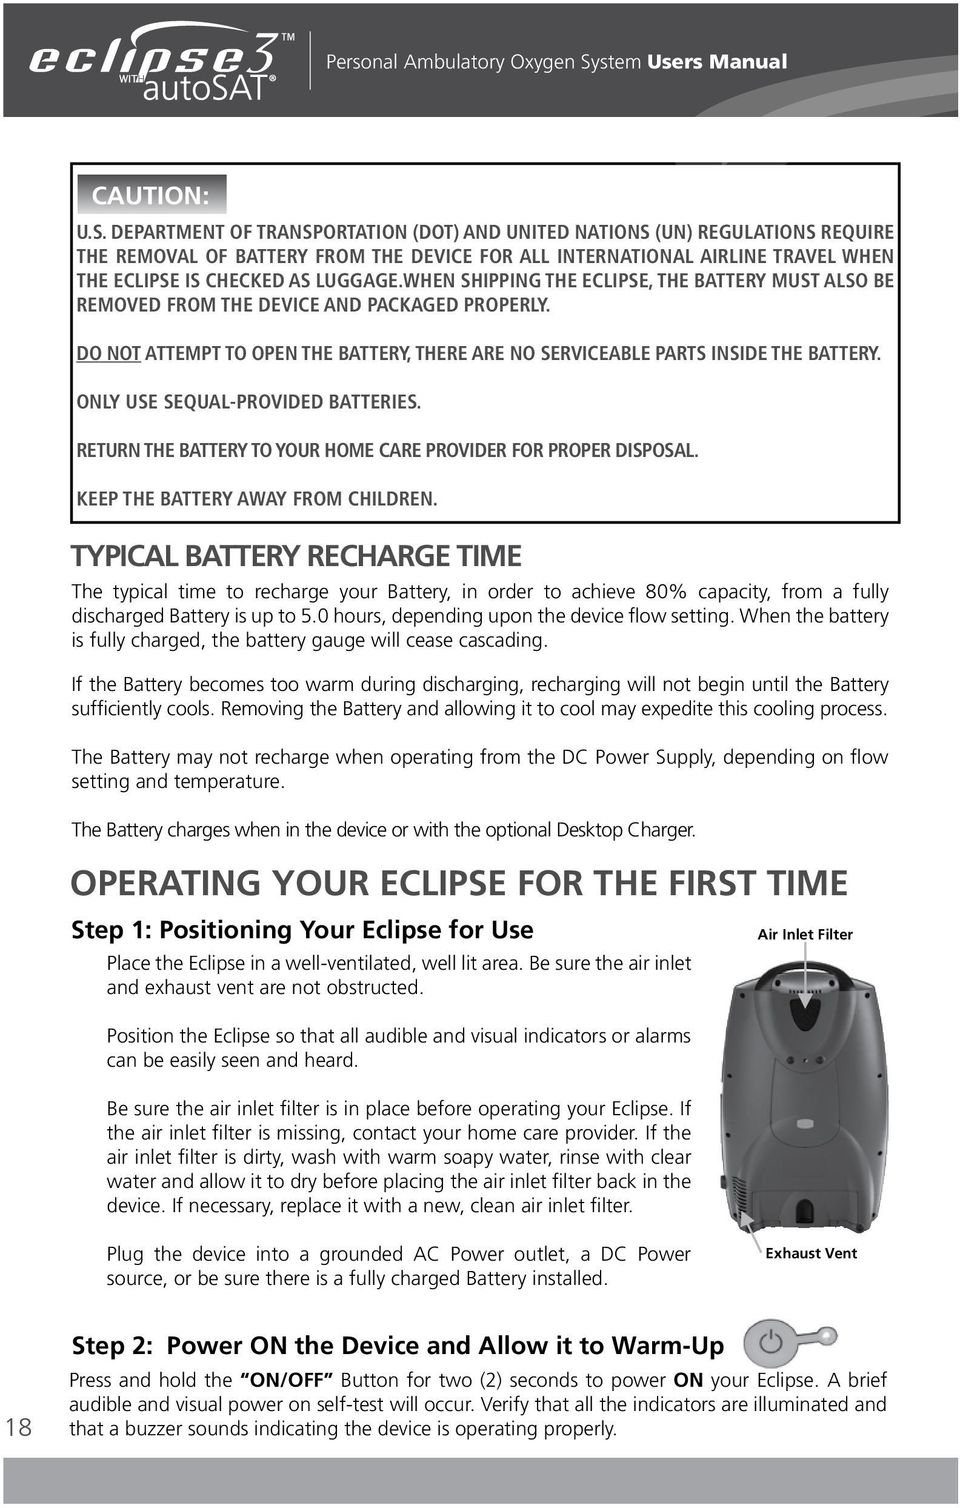 Department of Transportation (DOT) and United Nations (UN) Regulations require the removal of battery from the device for all international airline travel when the Eclipse is checked as luggage.